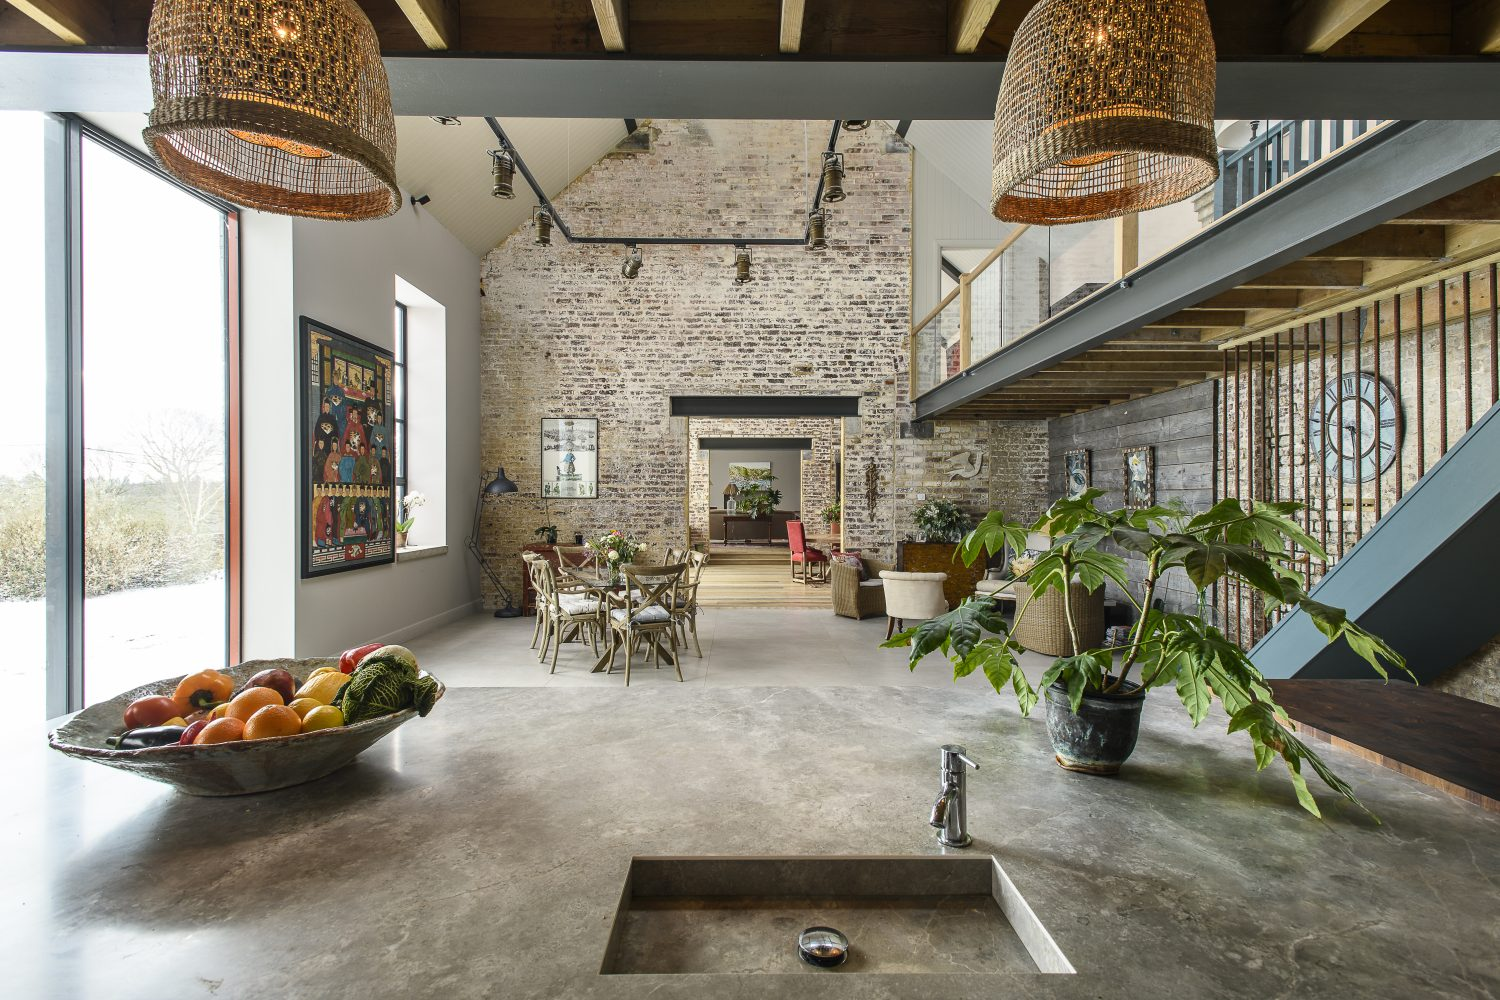 The original internal dividing walls have been knocked through so that your eye is drawn down the length of the building from the kitchen at one end to a fireplace at the other. A mezzanine expands over the sitting room and the kitchen, linked by a long glass balcony